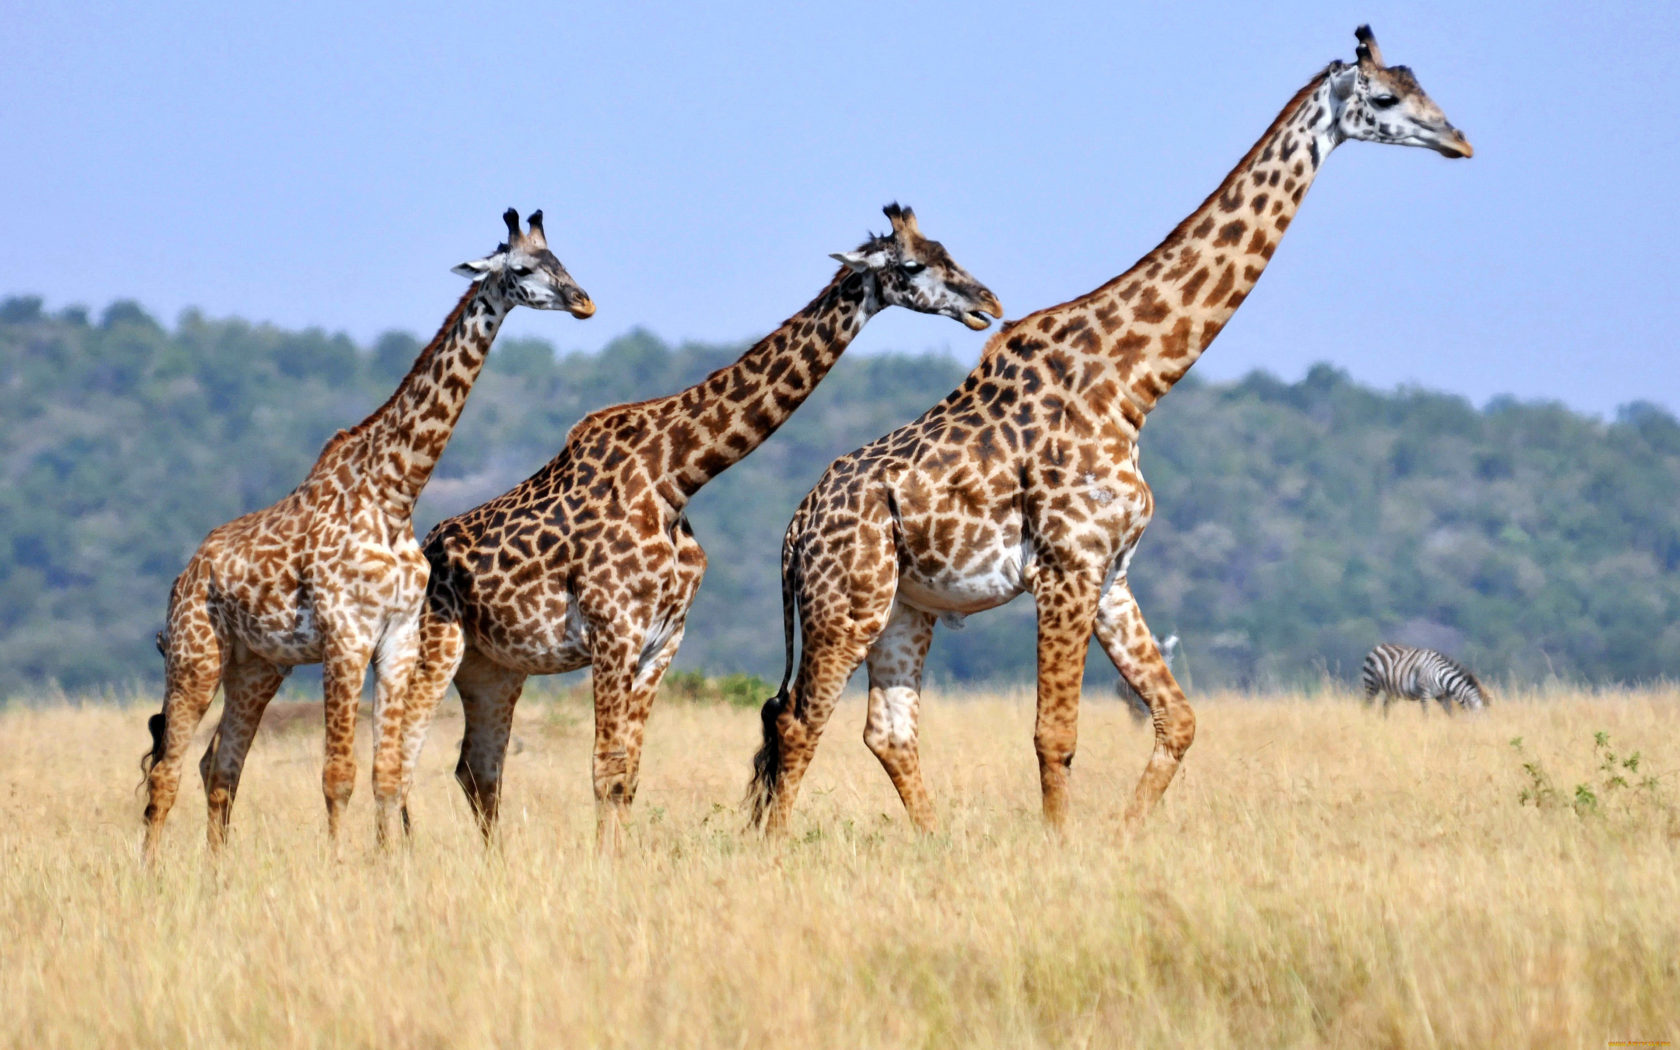 Wallpaper Hunter X Hunter Iphone Three Giraffes Animals With Long Neck Striped Body Casts